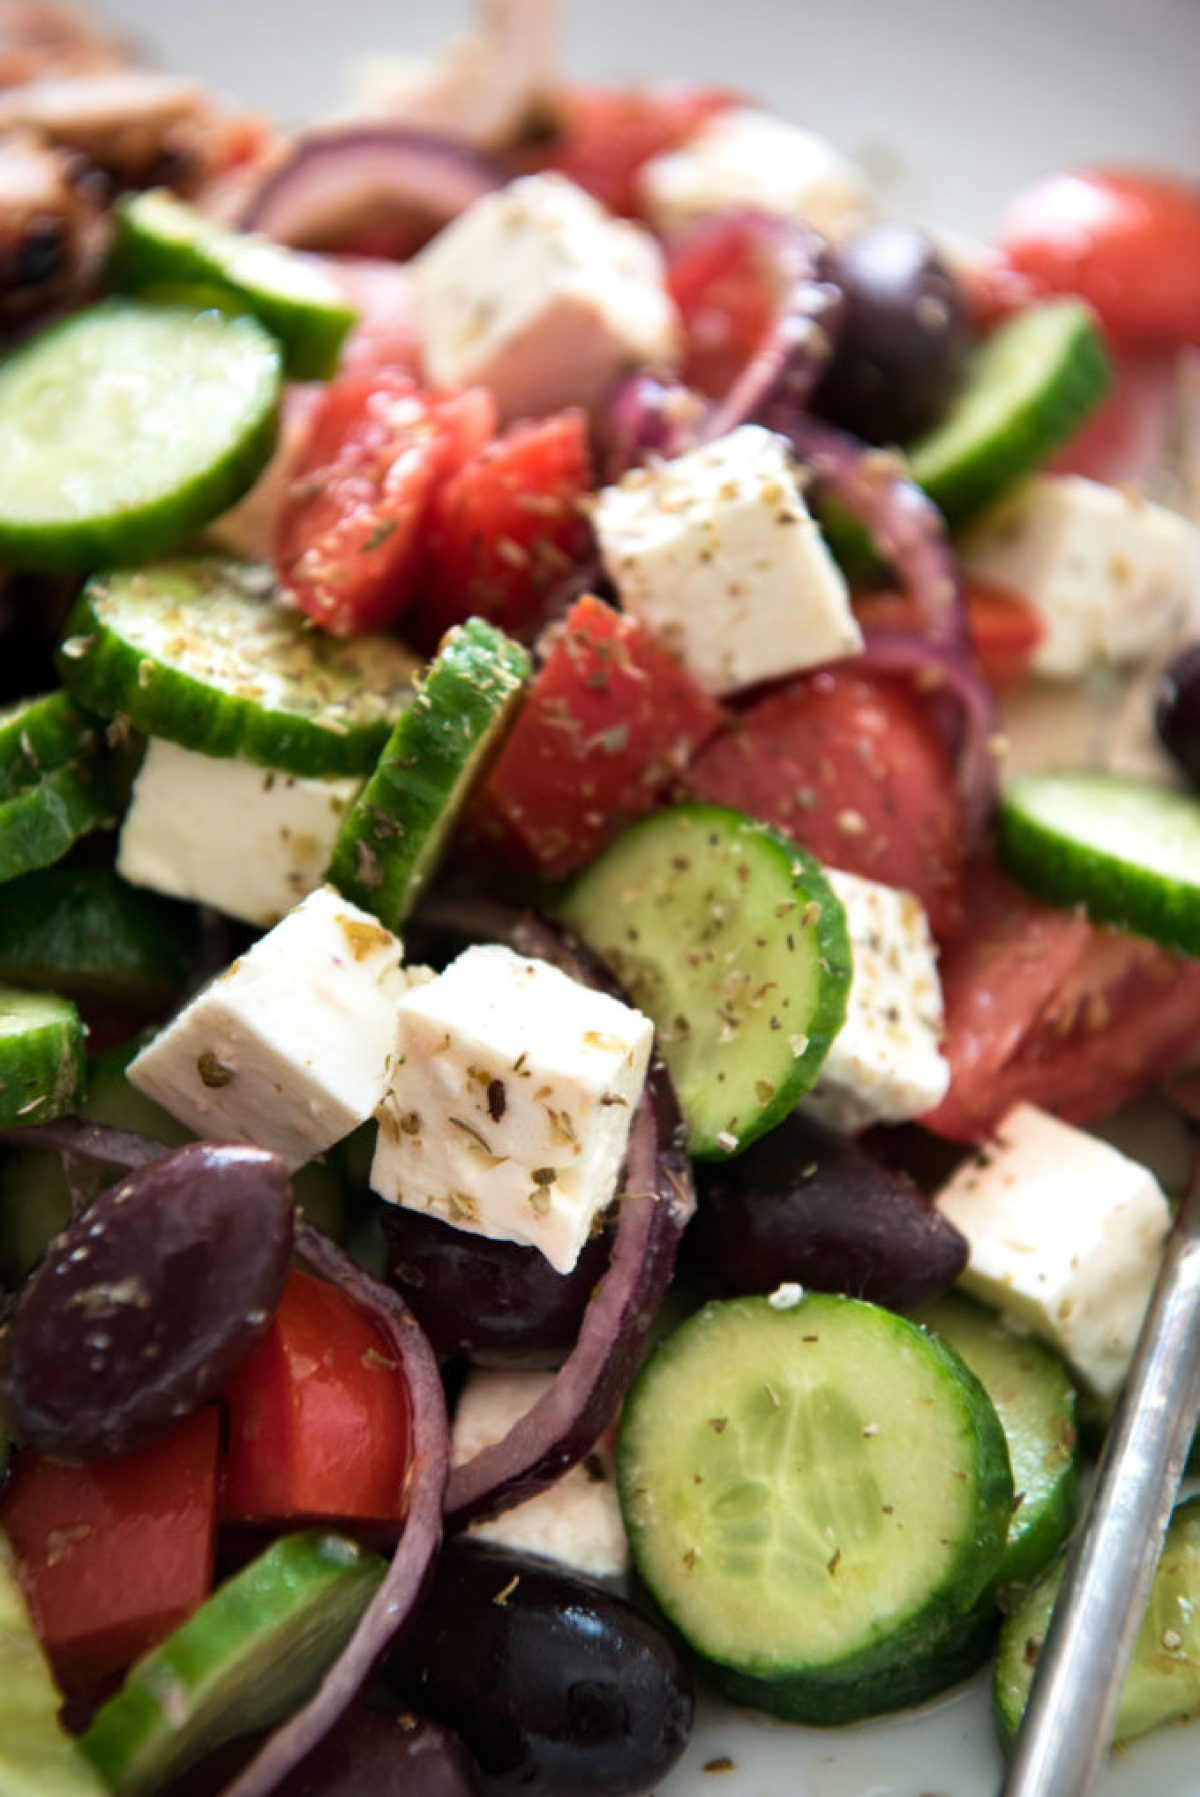 Classic greek salad for a summer meal